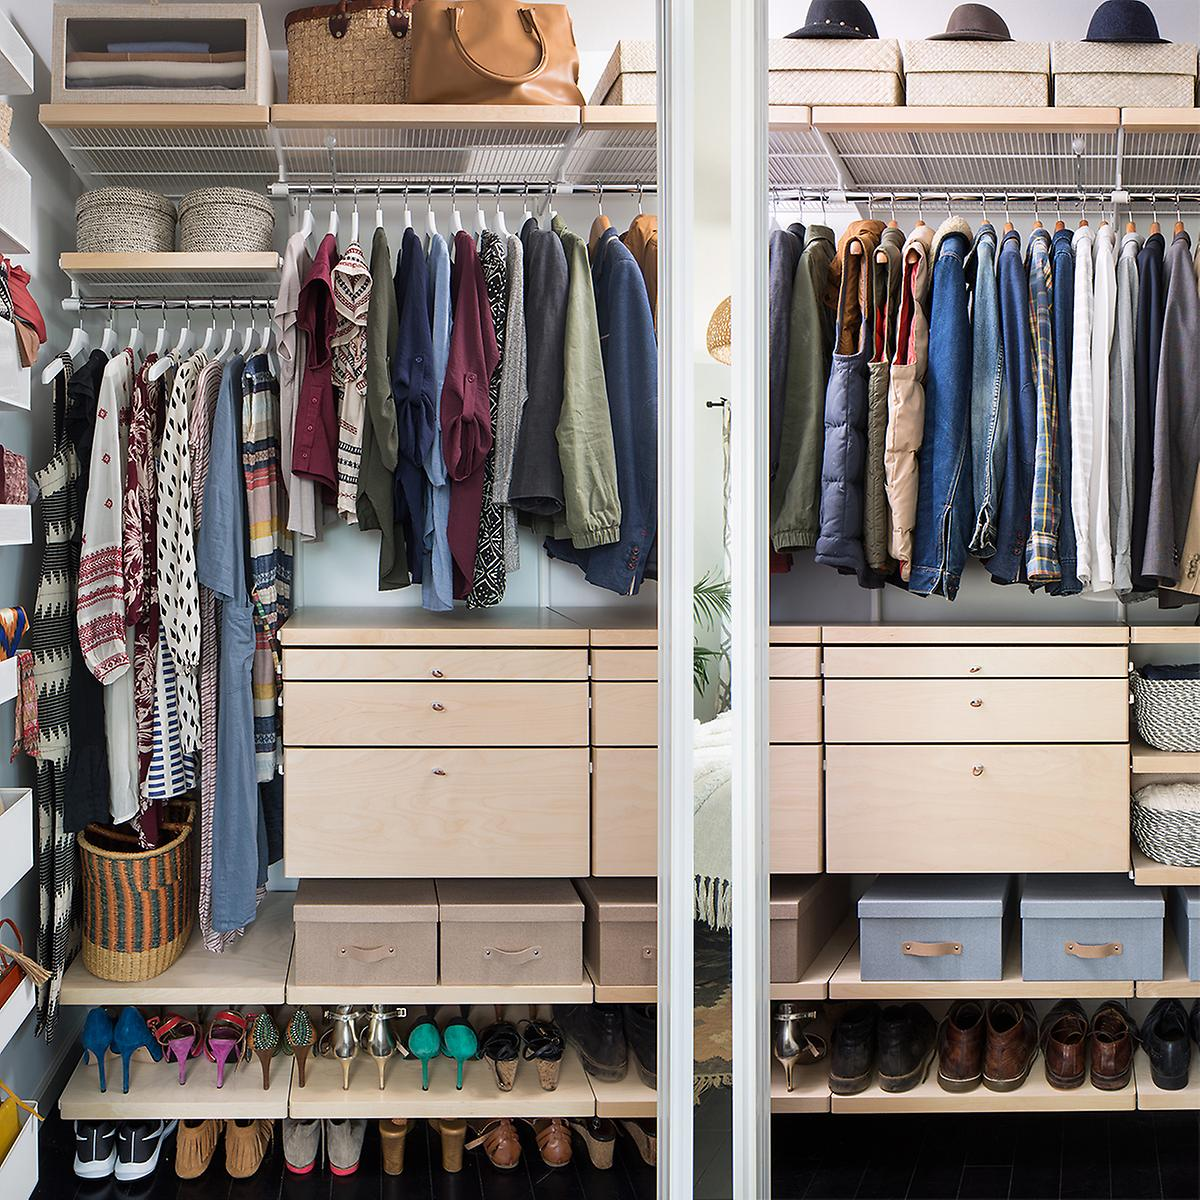 container elfa system plus systems closet closets installation also store